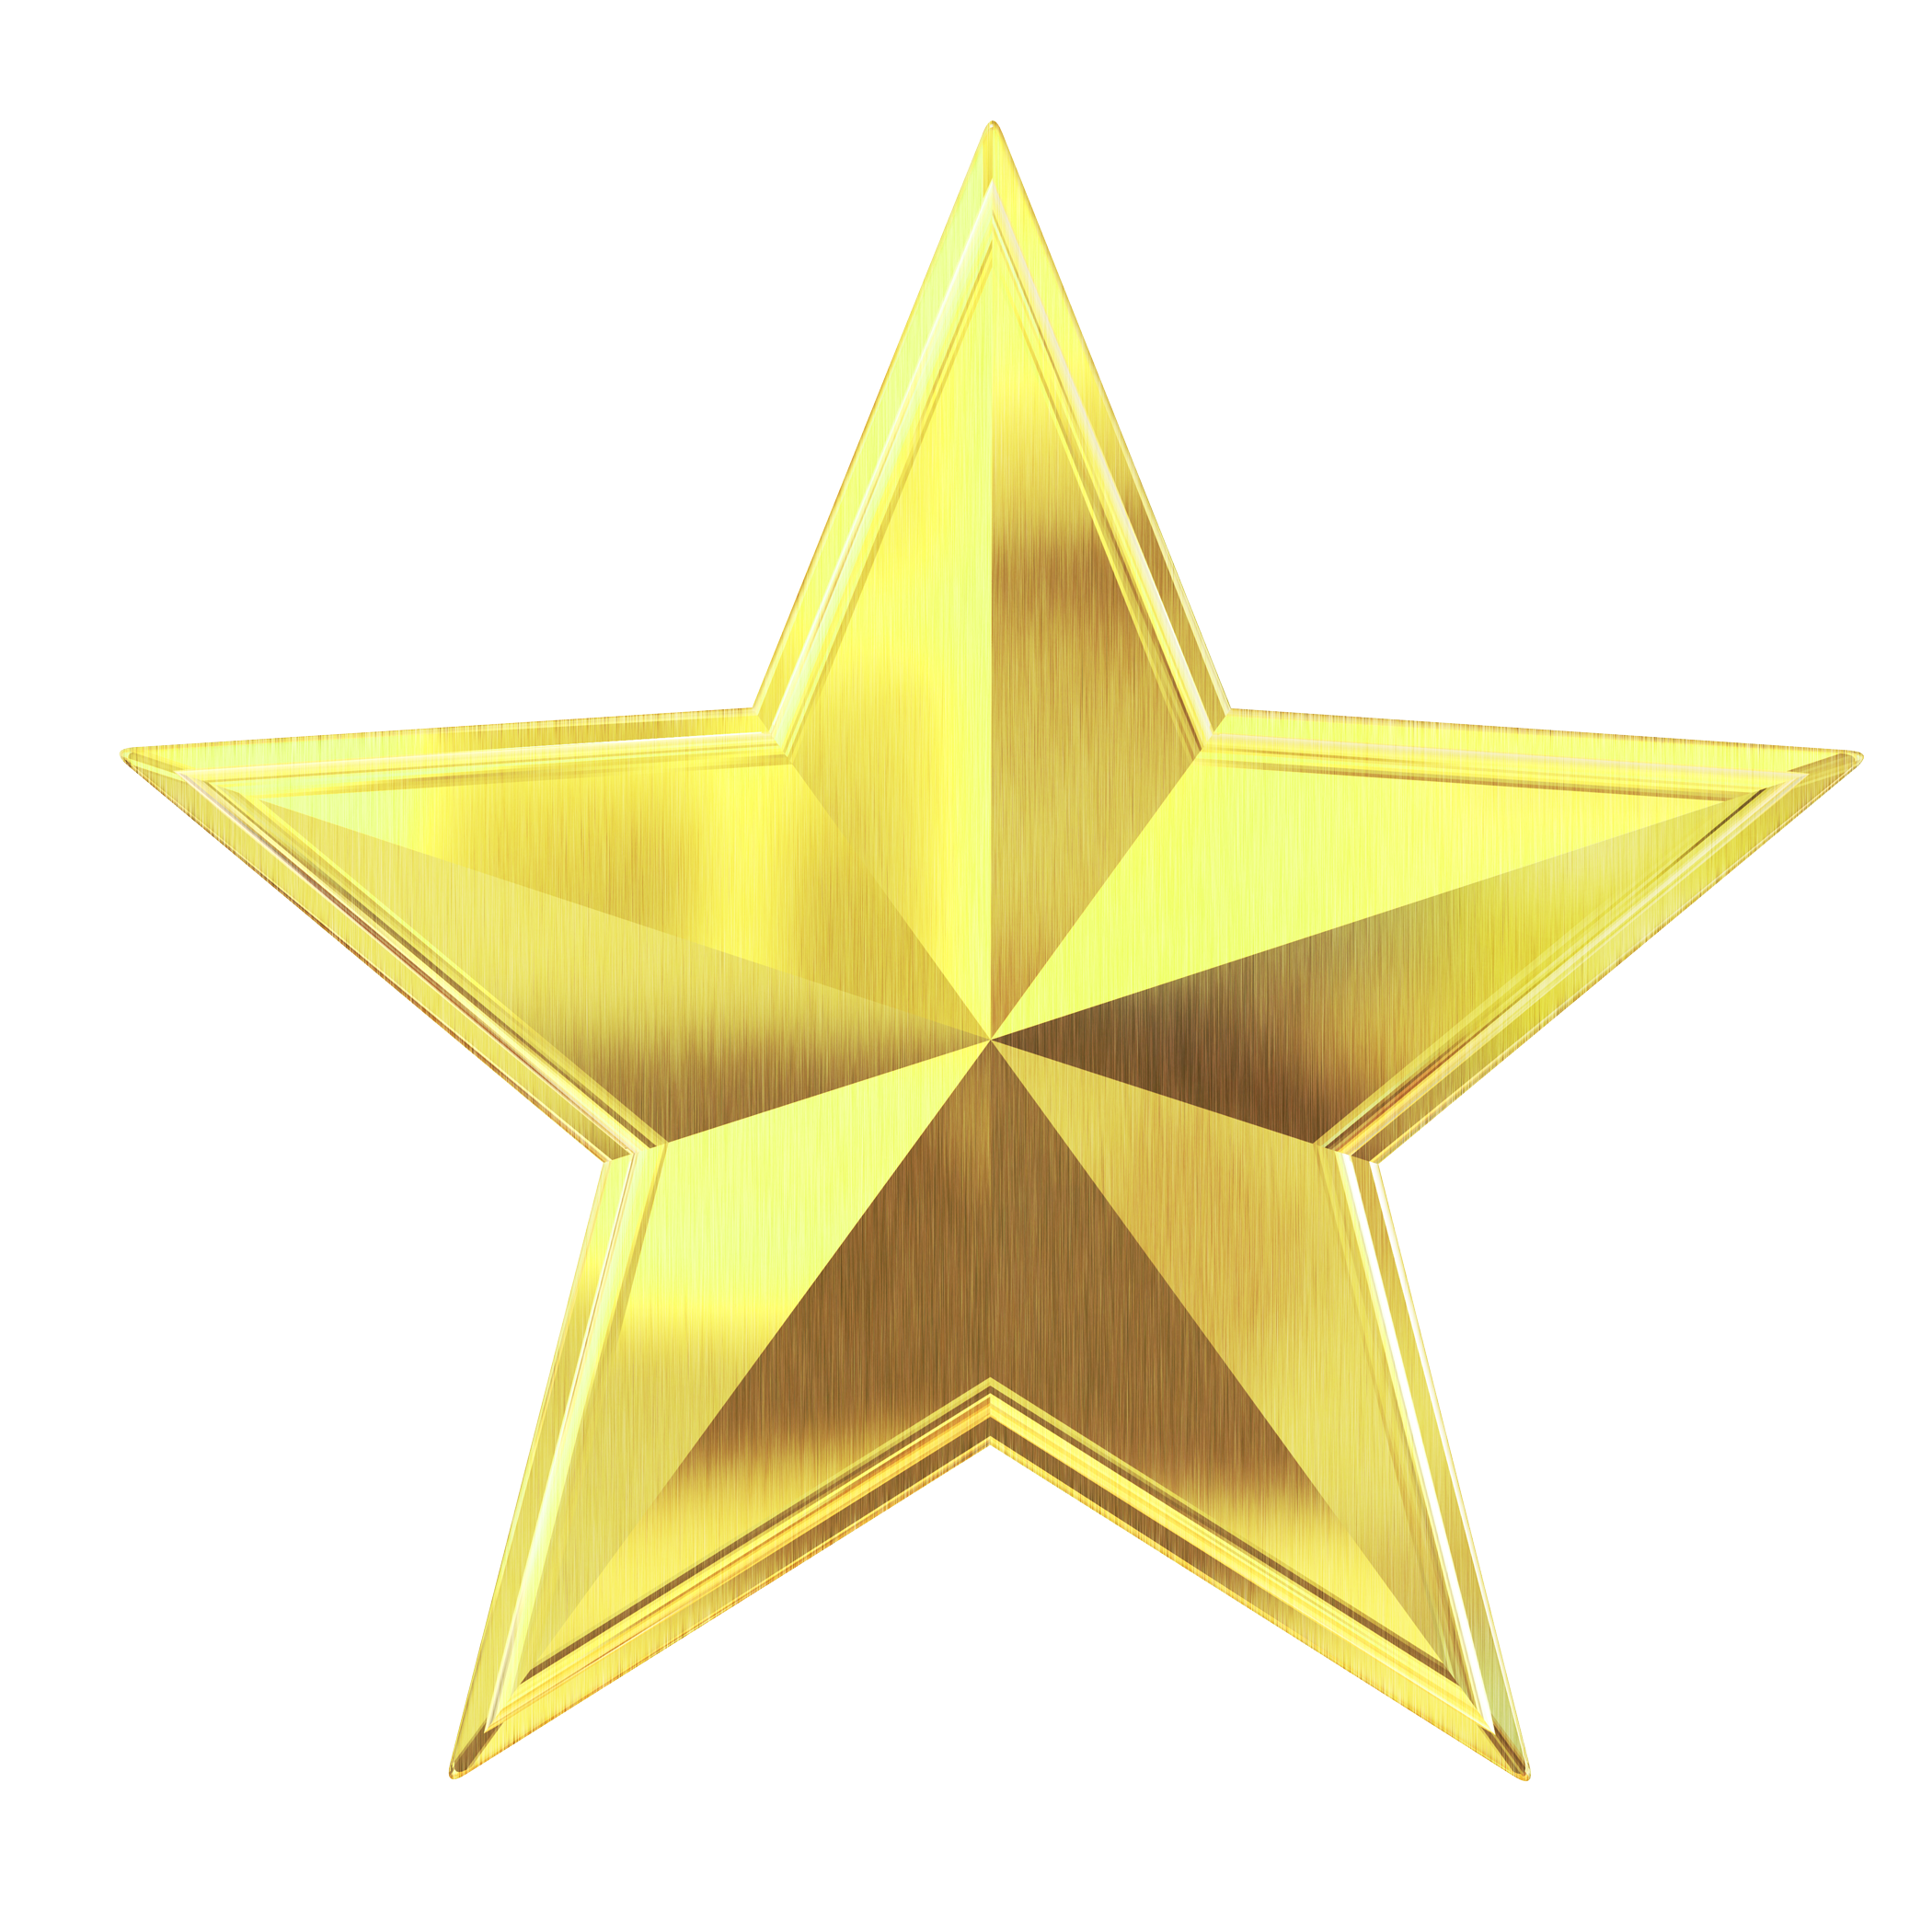 gold star png transparent image pngpix #24197